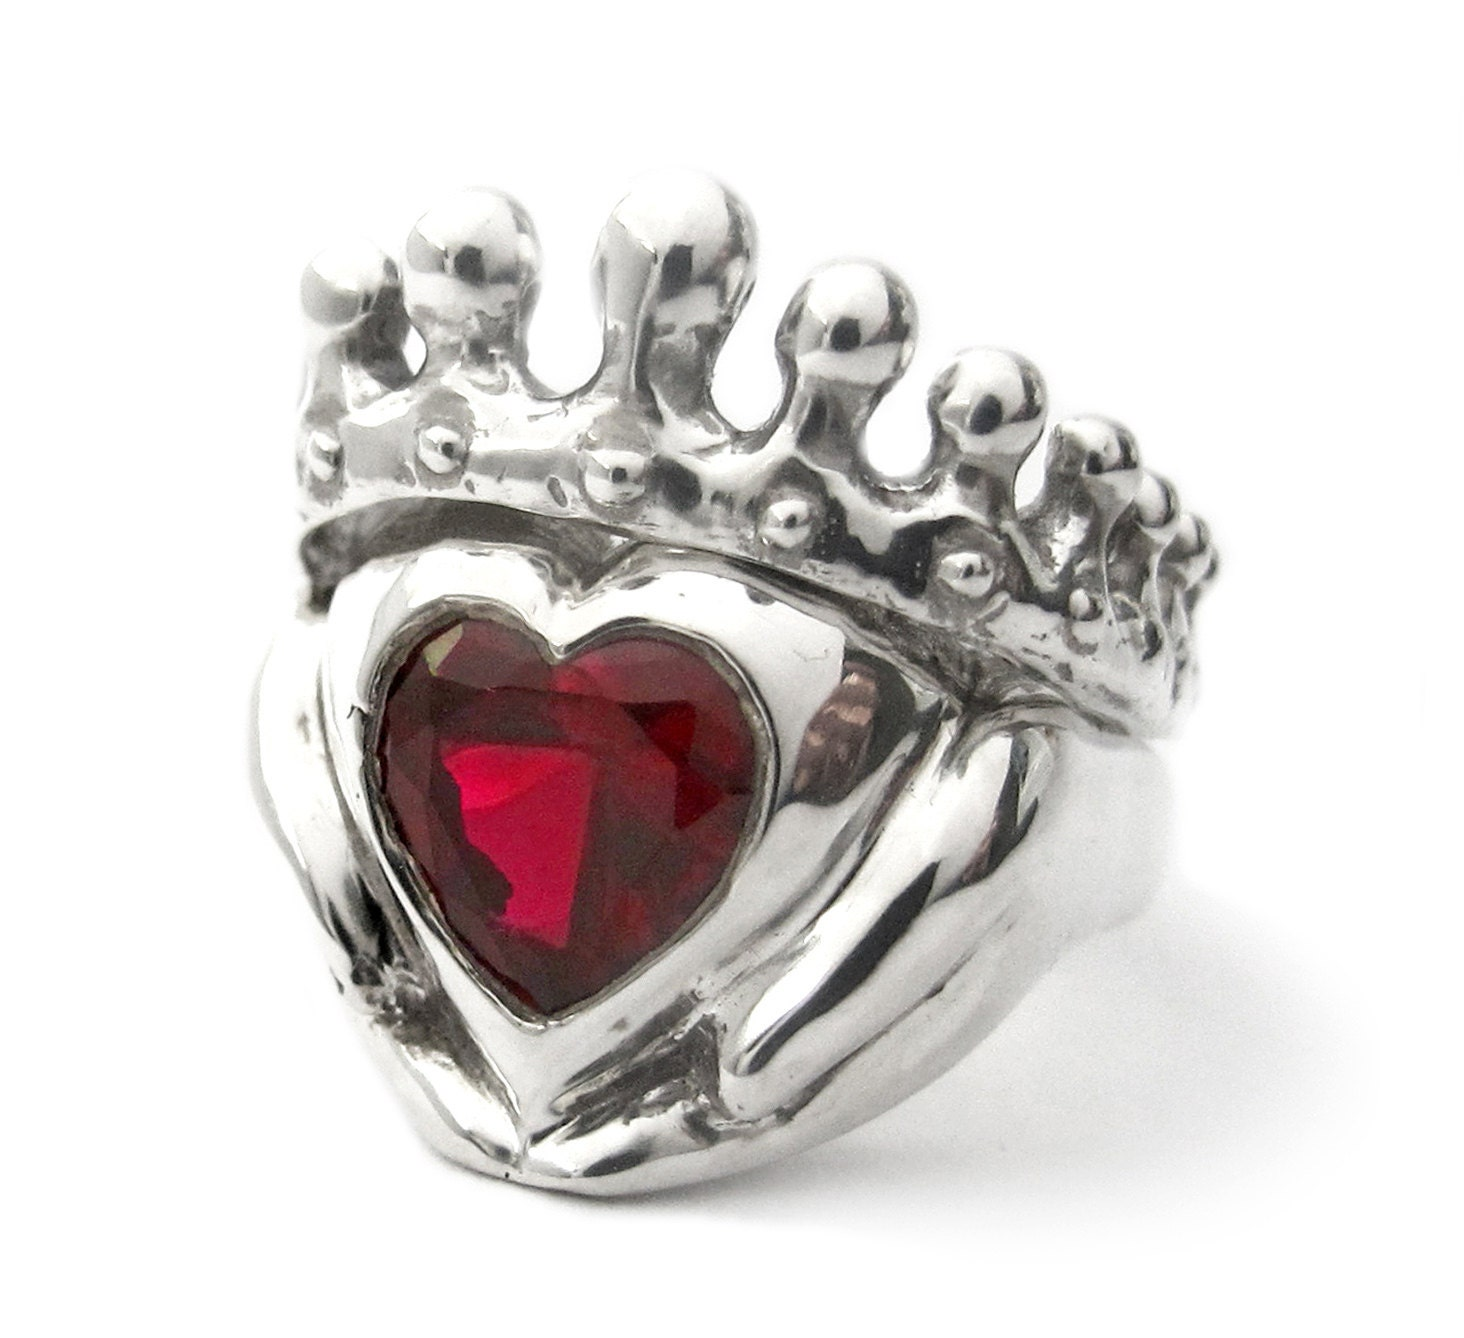 Big Red Heart Claddagh Wedding Set Engagement and wedding